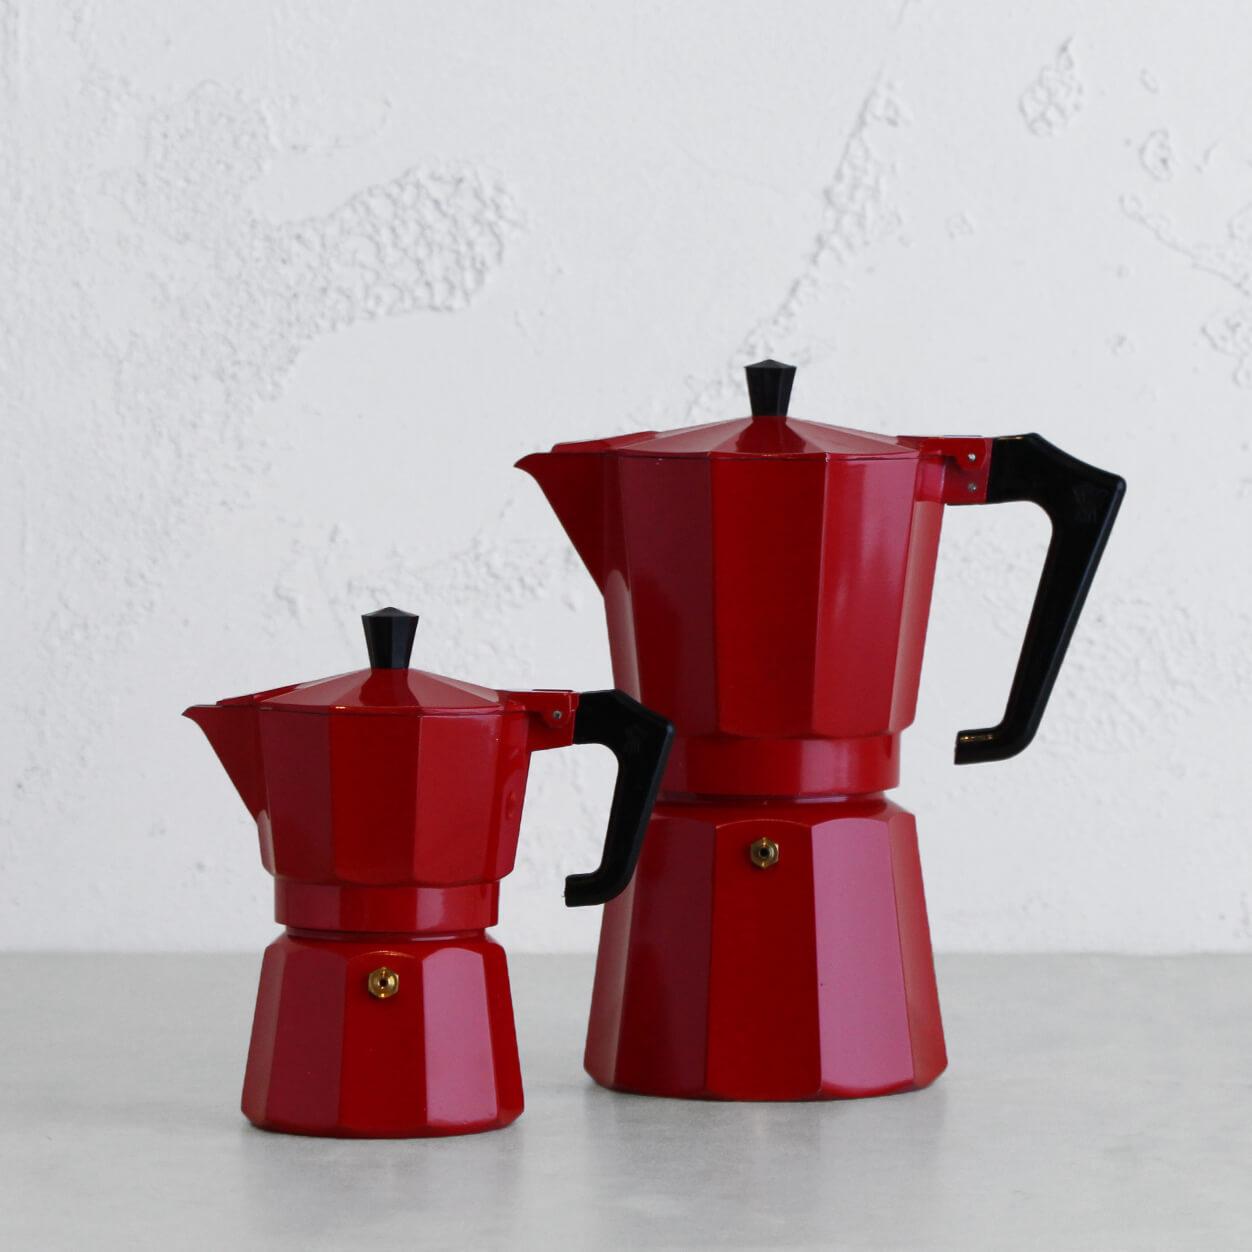 PEZZETTI ITALEXPRESS ITALIAN COFFEE MAKER  |  3 + 9 CUP PACKAGE  |  RED